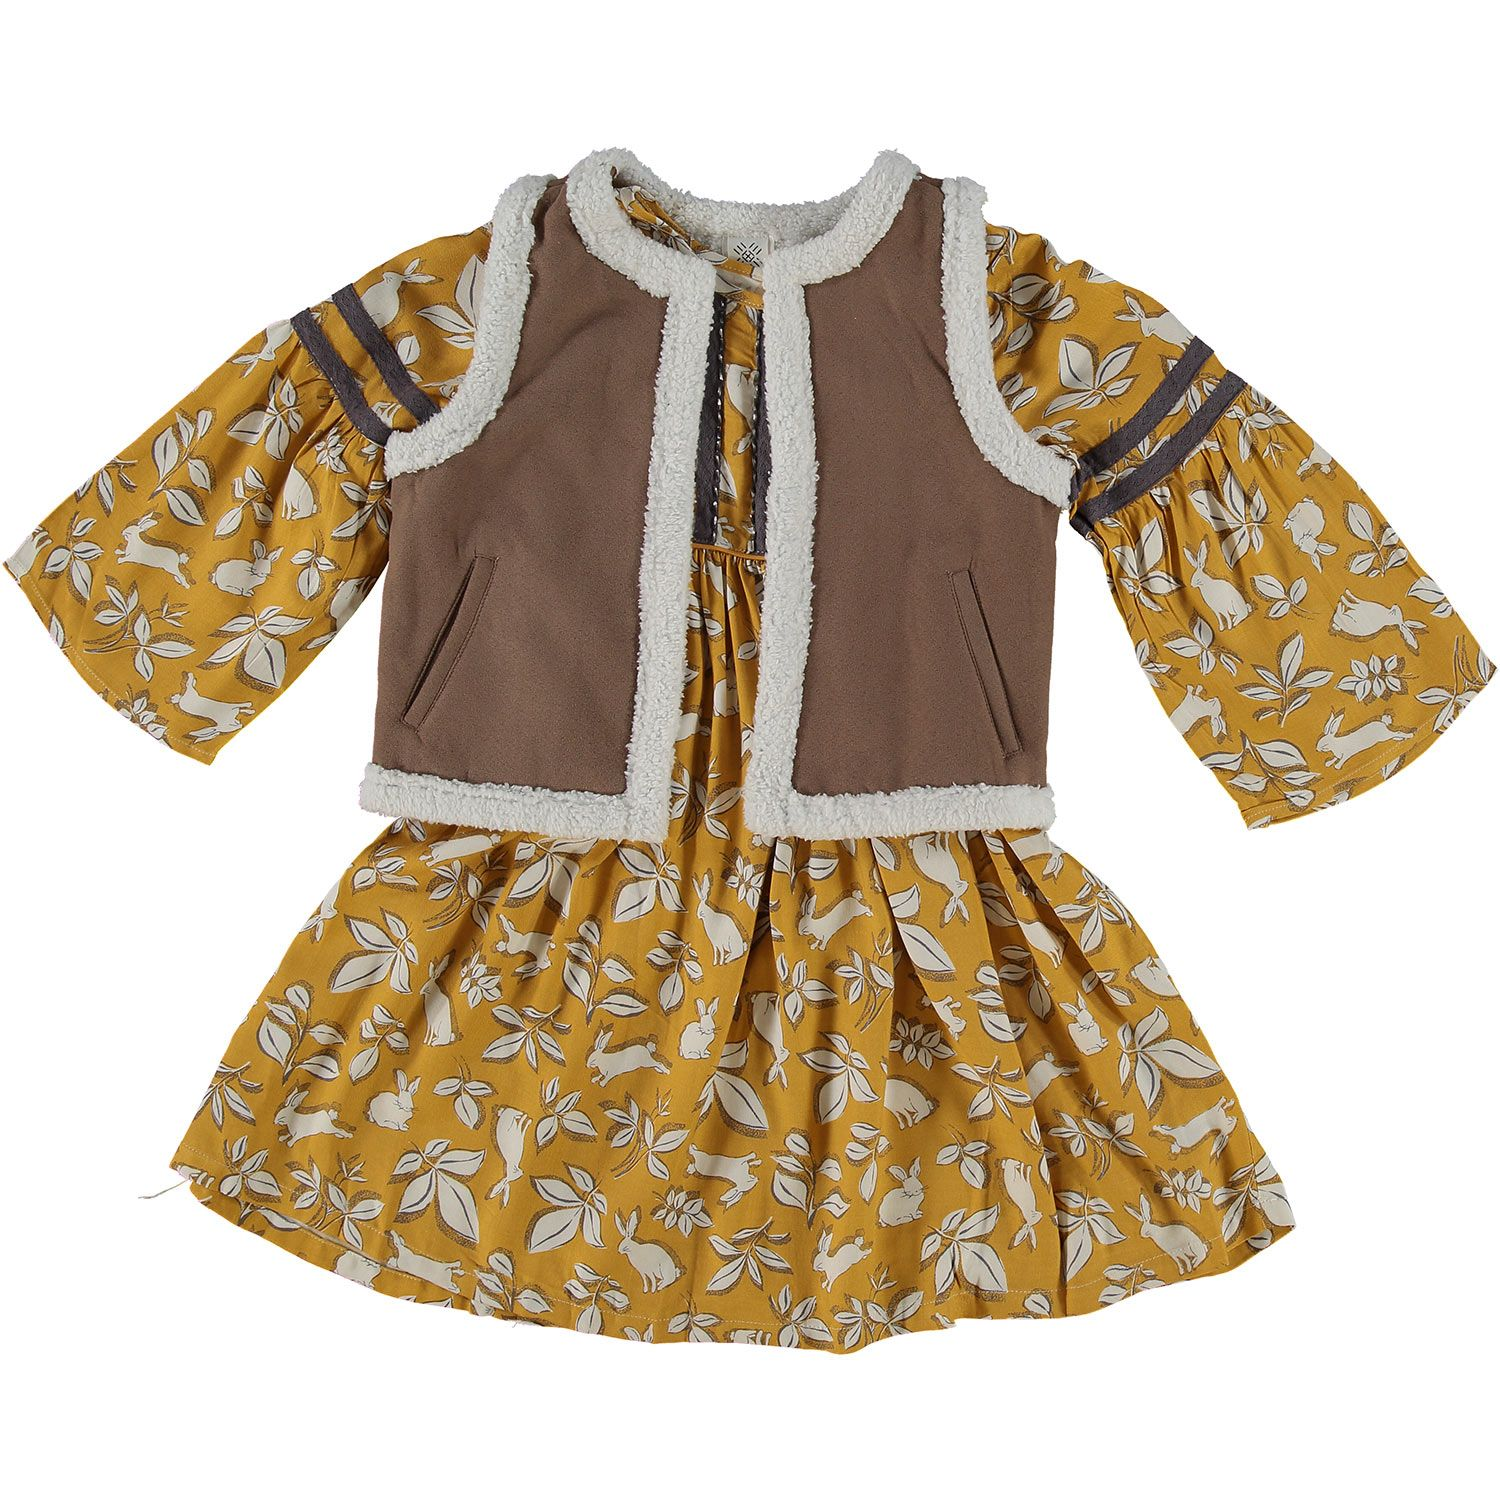 Artisan NY Mustard & Brown Dress Outfit  Clothes, Girl outfits